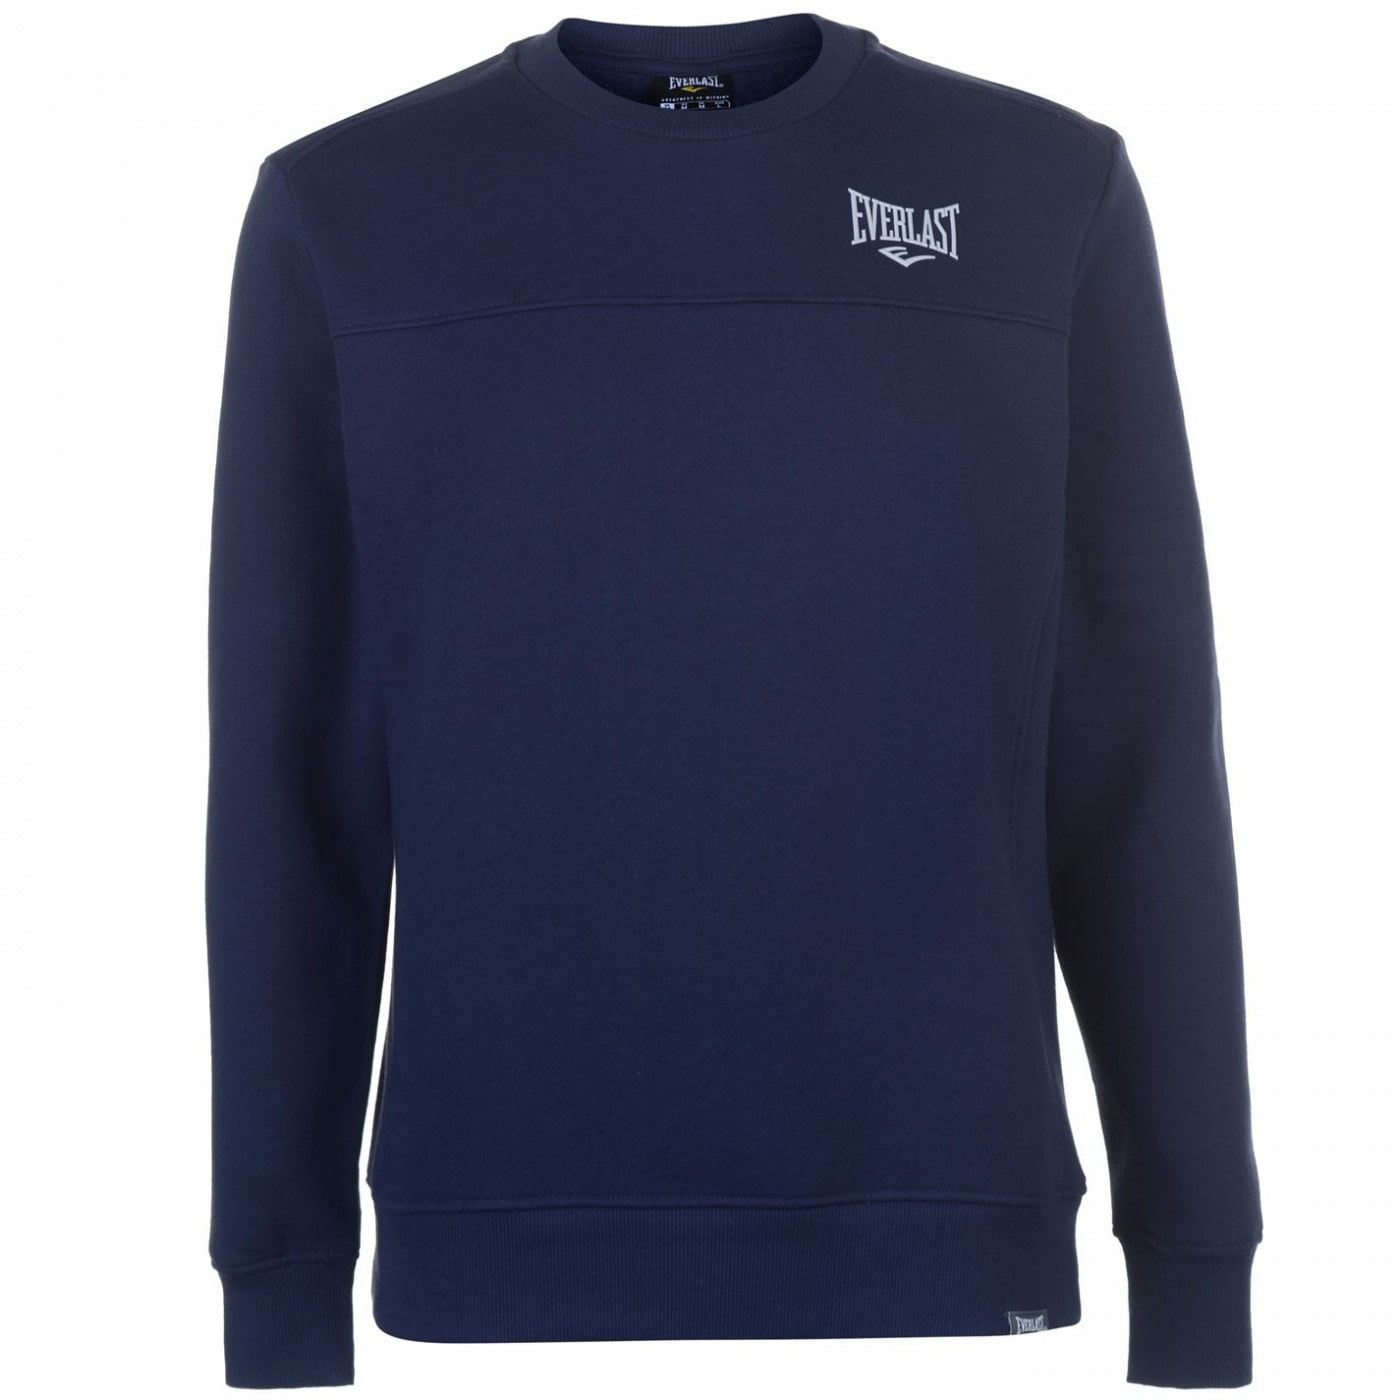 Men's sweatshirt Everlast Basic